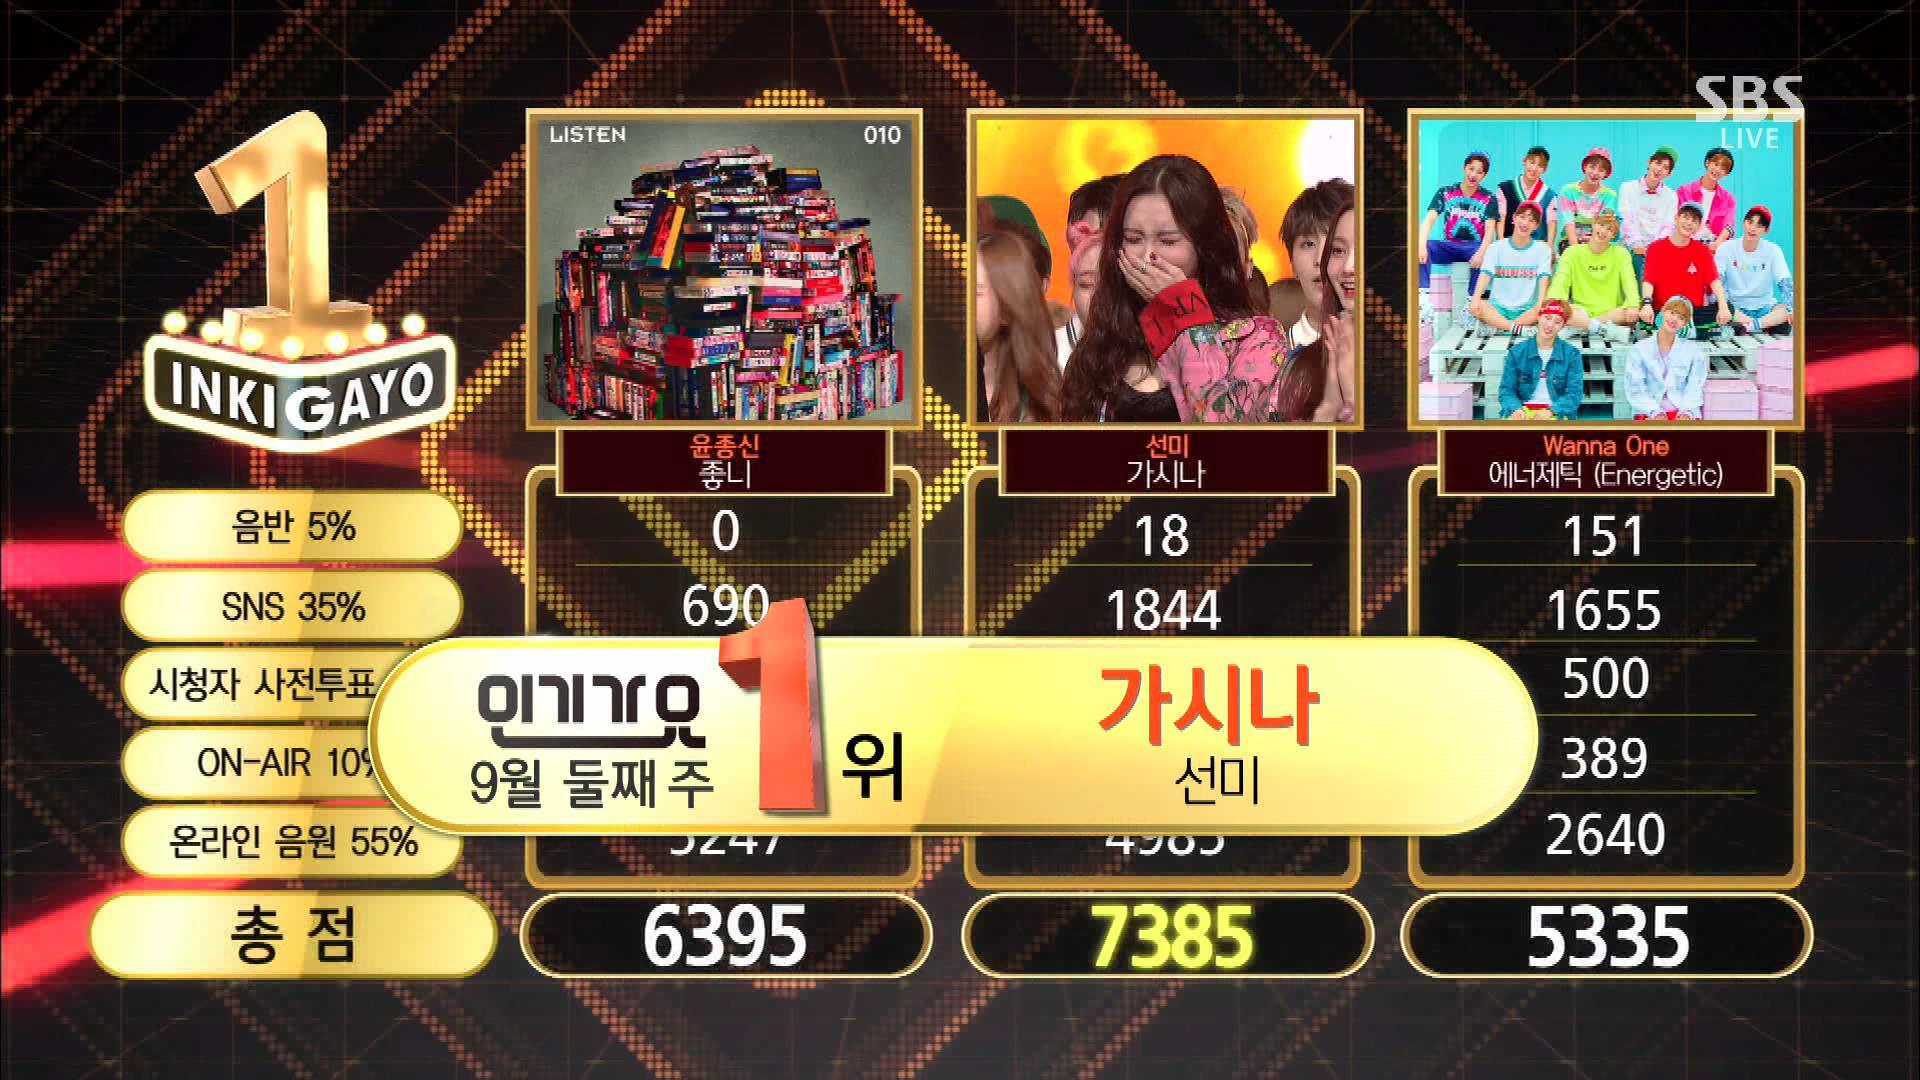 Watch: Sunmi Takes 4th Win With Gashina On Inkigayo; Performances By EXO, Lee Gikwang, B.A.P, And More!